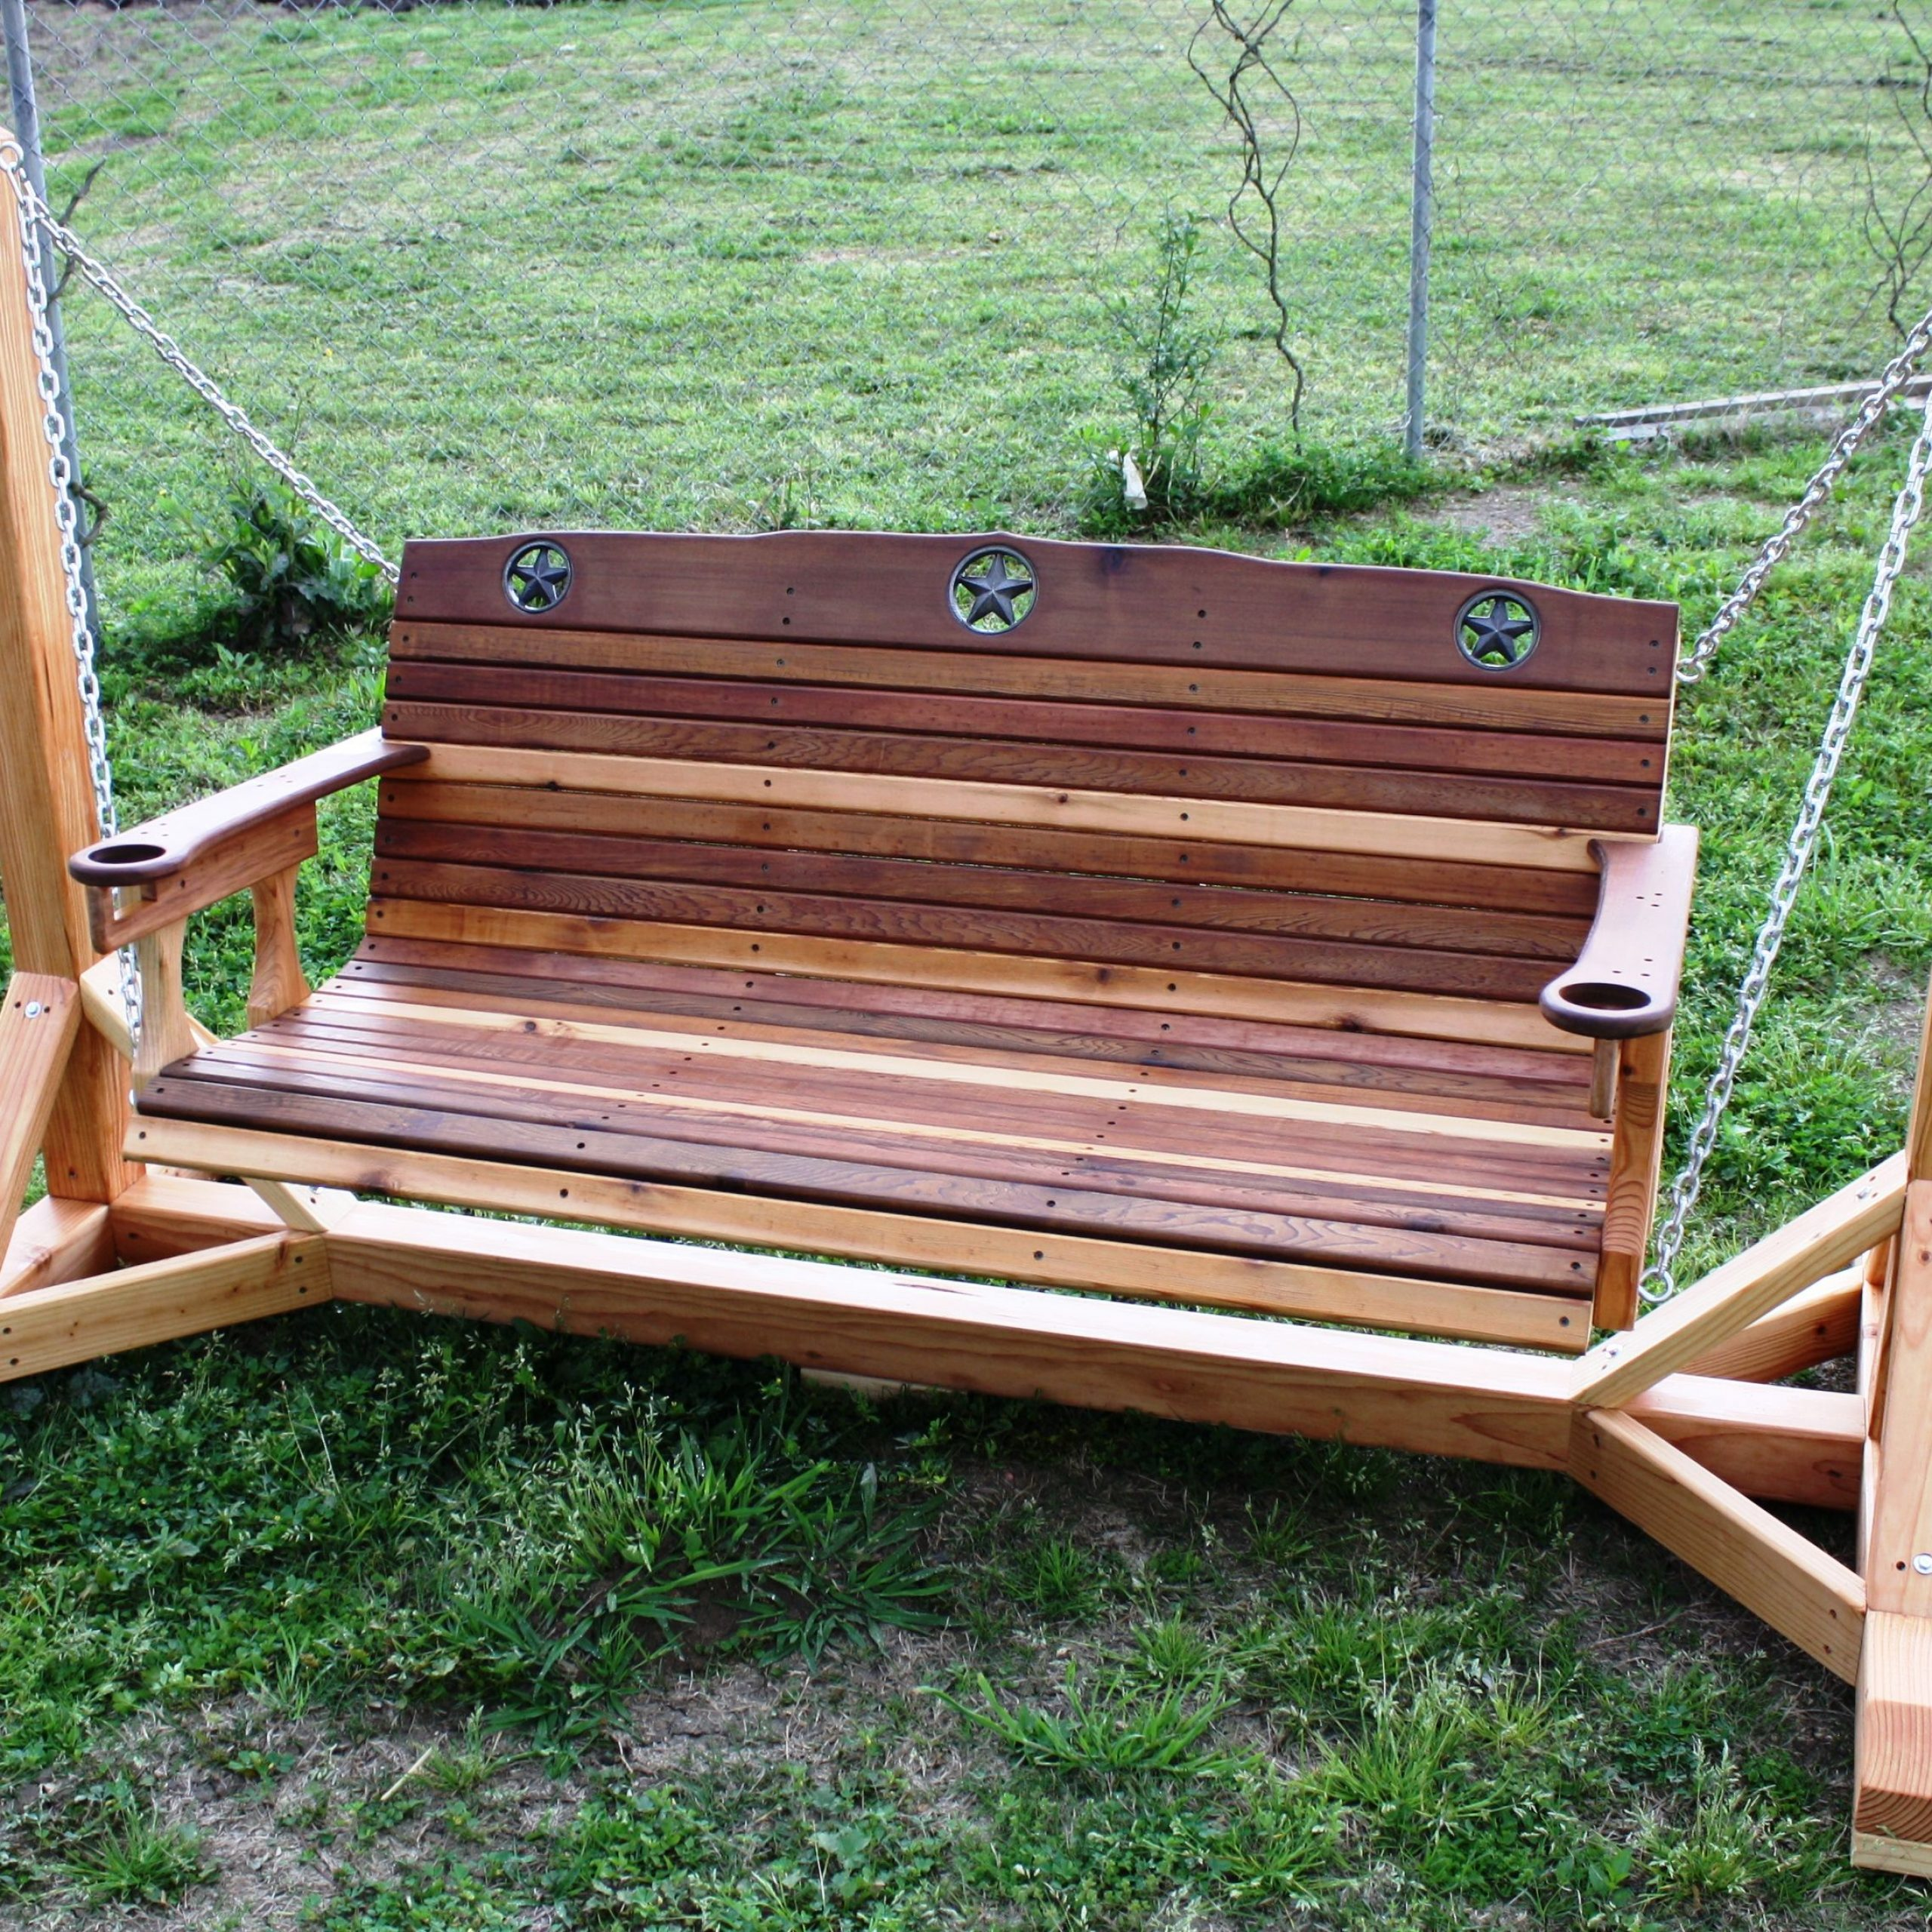 Rustic Star Texas Porch Swing – Cedar Creek Woodshop | Porch Throughout Patio Porch Swings With Stand (View 5 of 25)